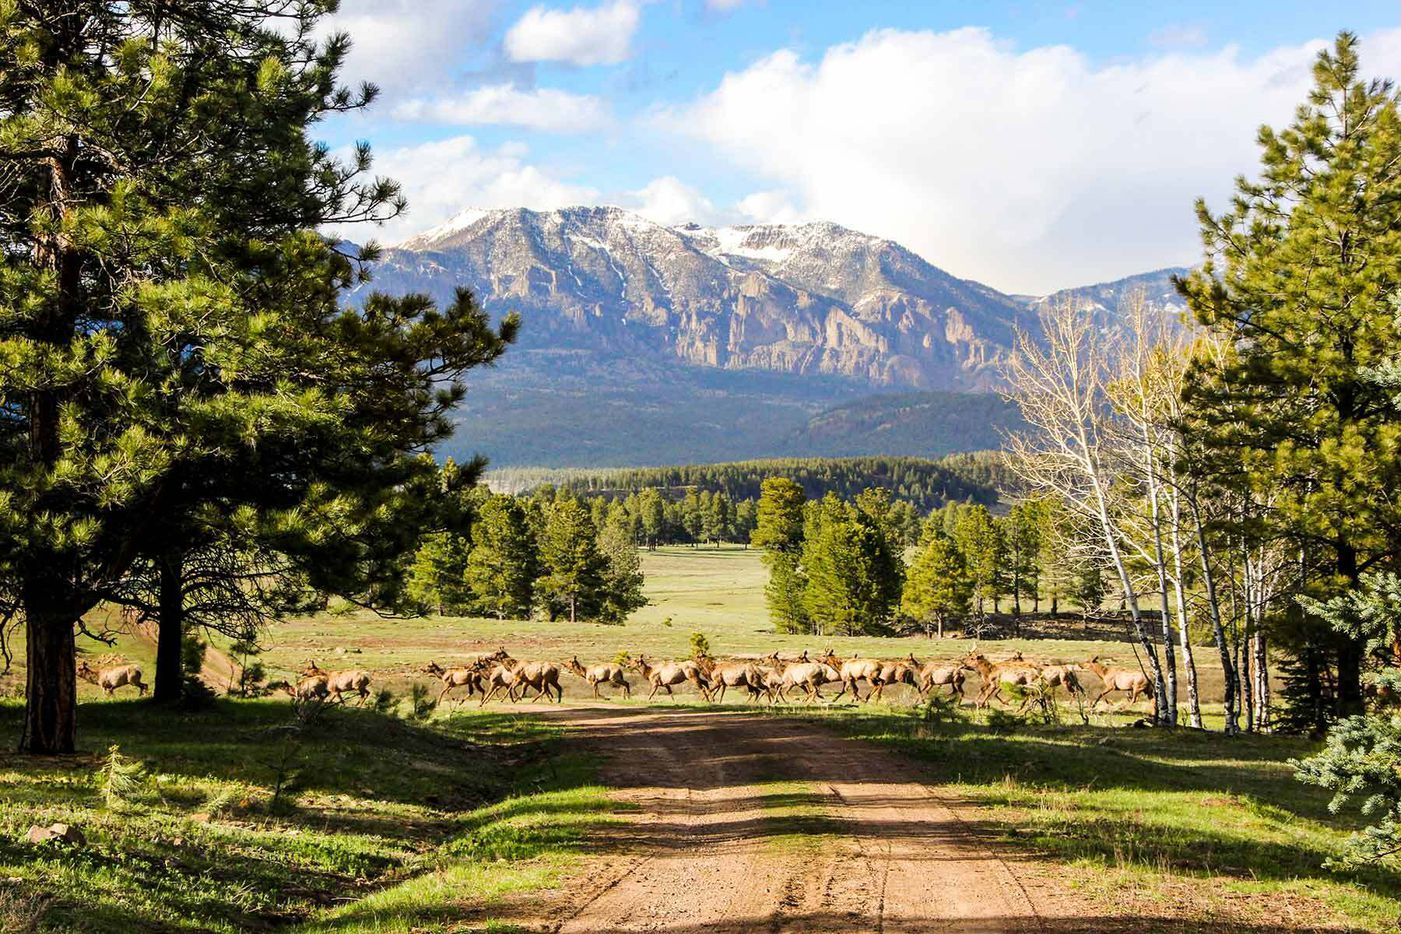 CEO and founder of McKinney-based Service First Mortgage Shawn Broussard, along with his wife Martha Broussard, purchased this 9,600-acre property in Pagosa Springs, Colorado. Piedra Valley Ranch will be stewarded under the Broussard Environmental and Wildlife Conservation Foundation.